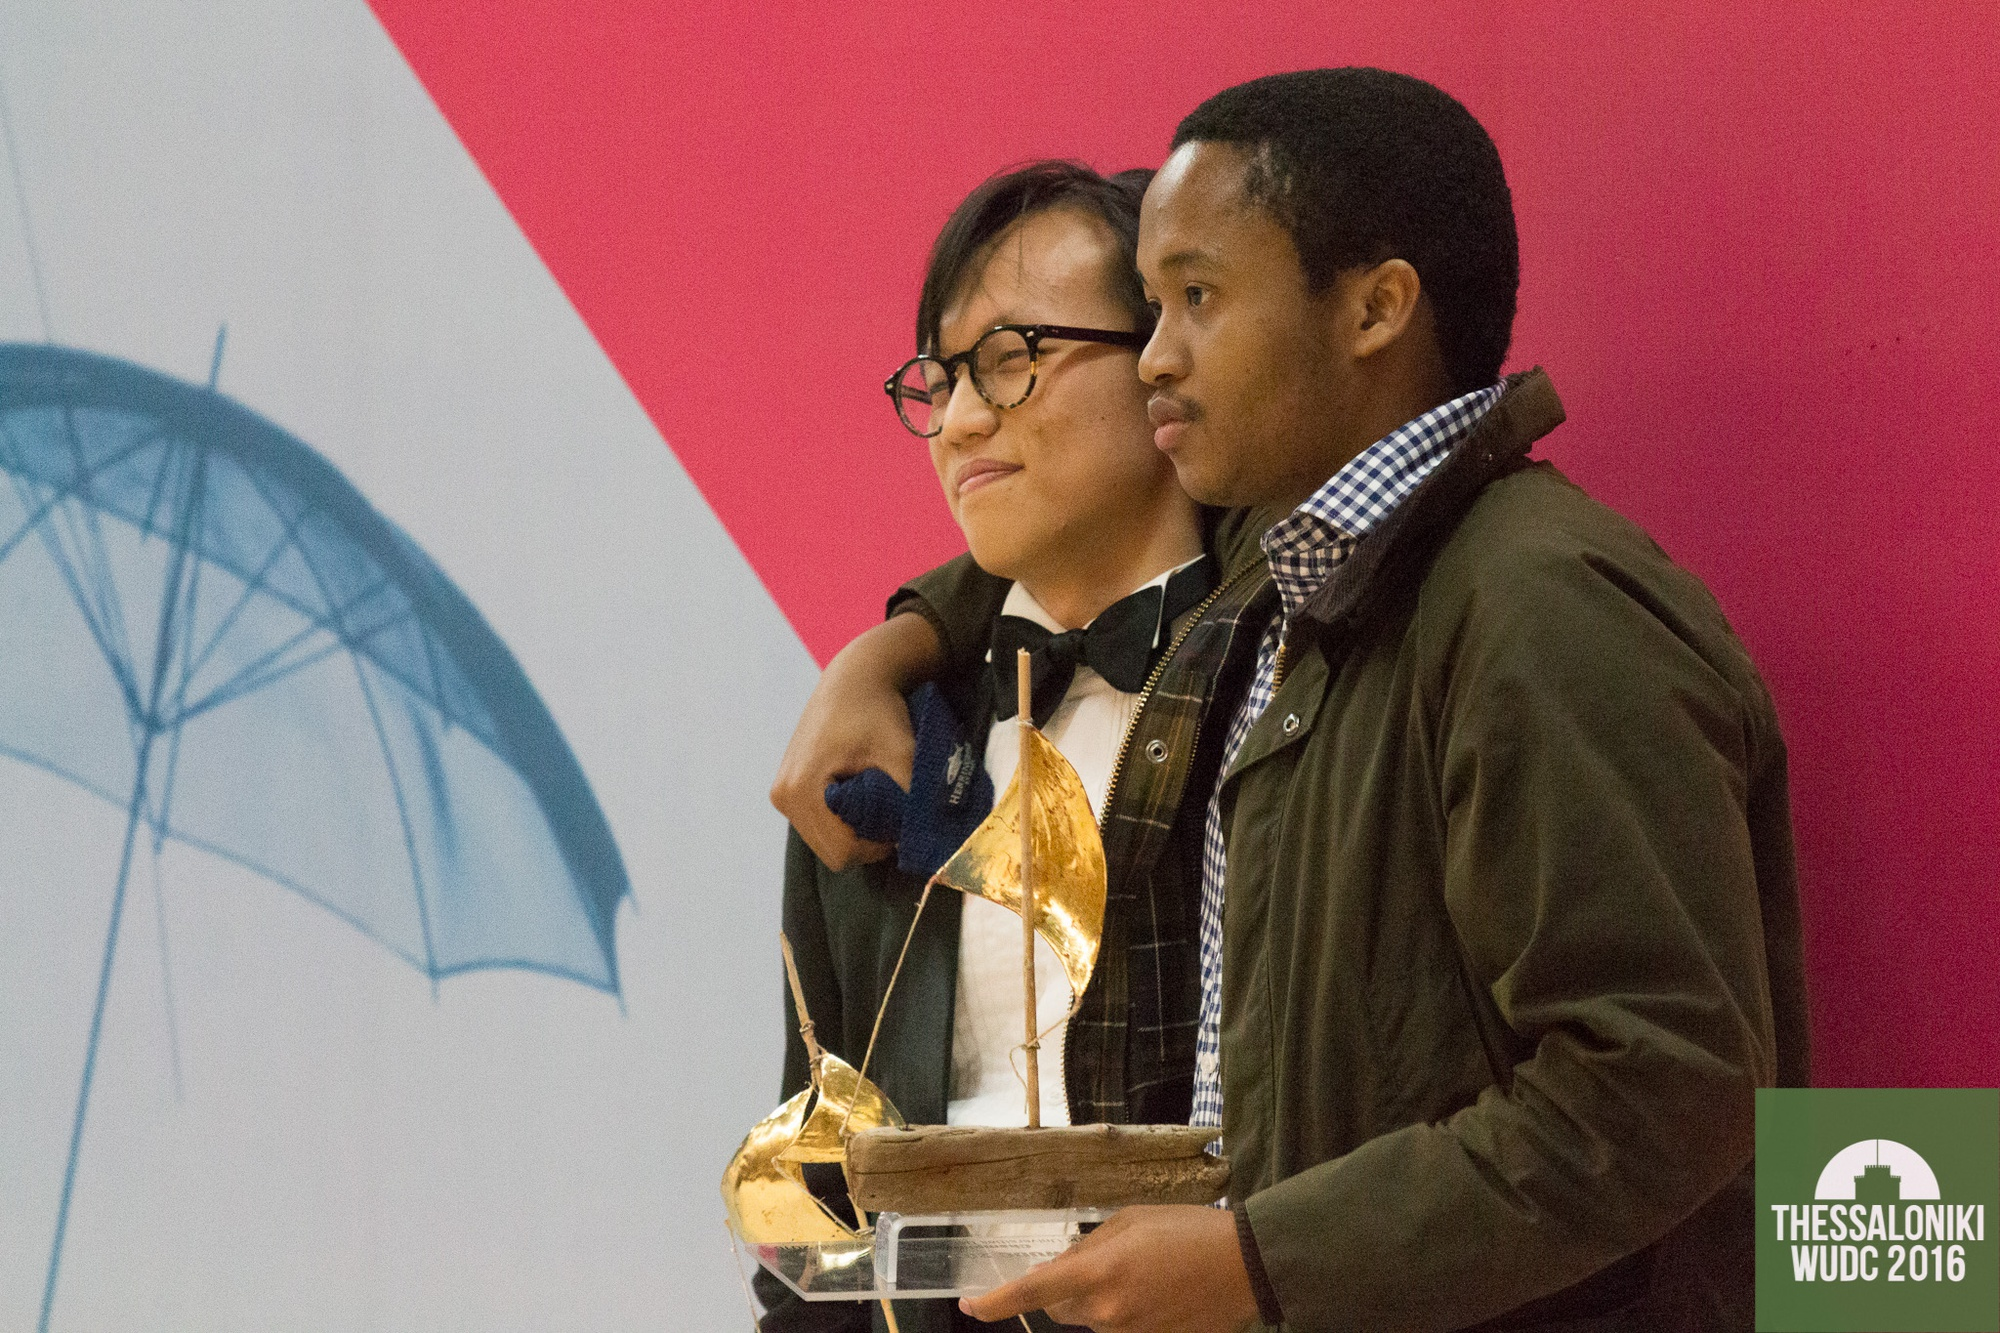 Fanelesibonge S. Mashwama '17 and Bo Seo '17 were victorious in the 2016 World Universities Debating Championship, becoming the second Harvard team to earn the title in three years. Image courtesy of Manuel J. Adams © Thessaloniki WUDC 2016.